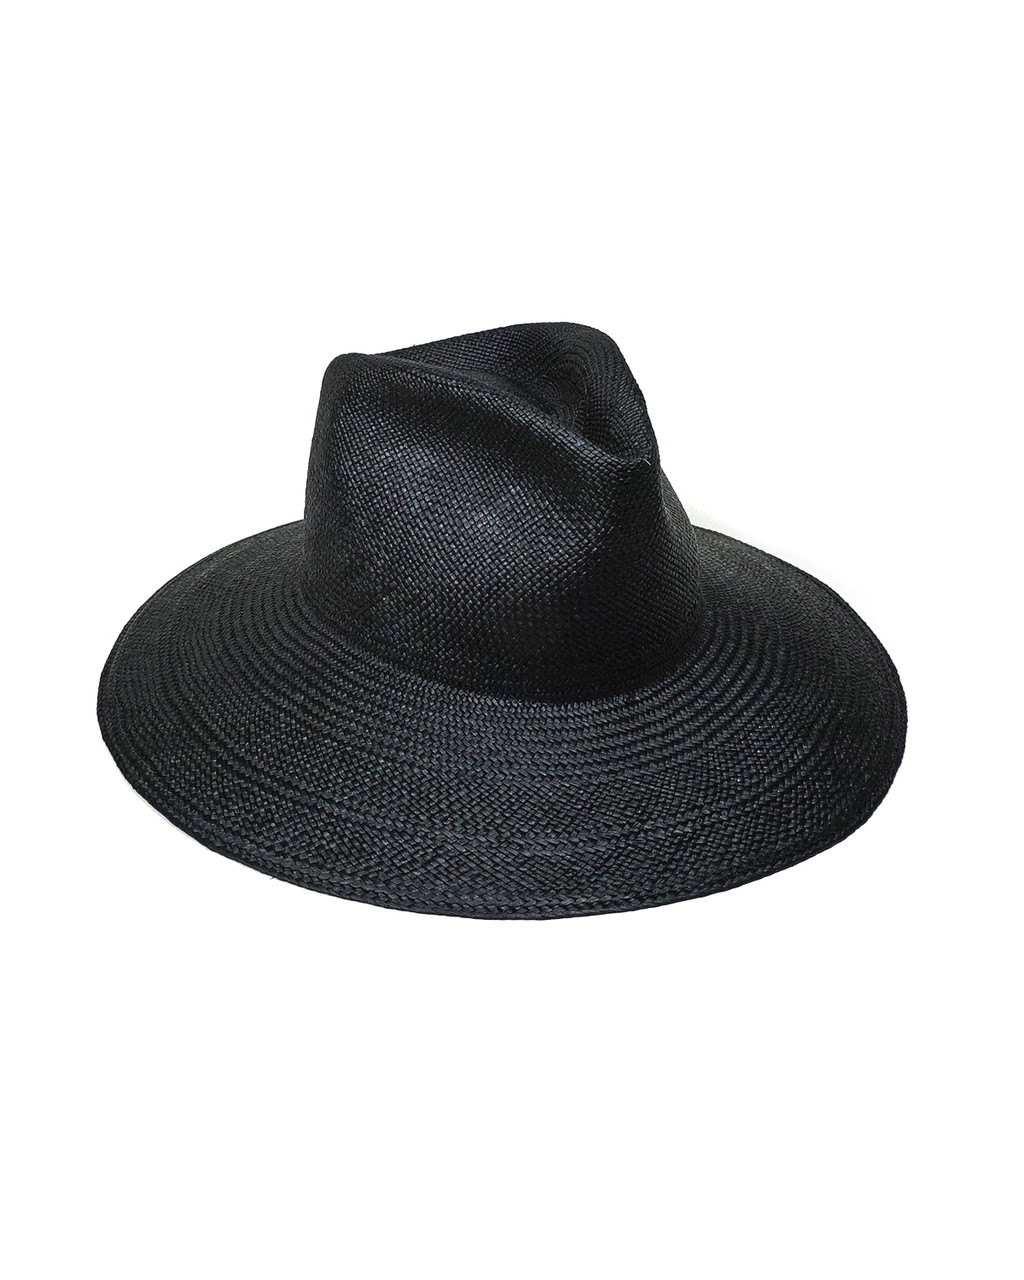 Clyde Panama Pinch Hat In Black Straw From Saint Cloud